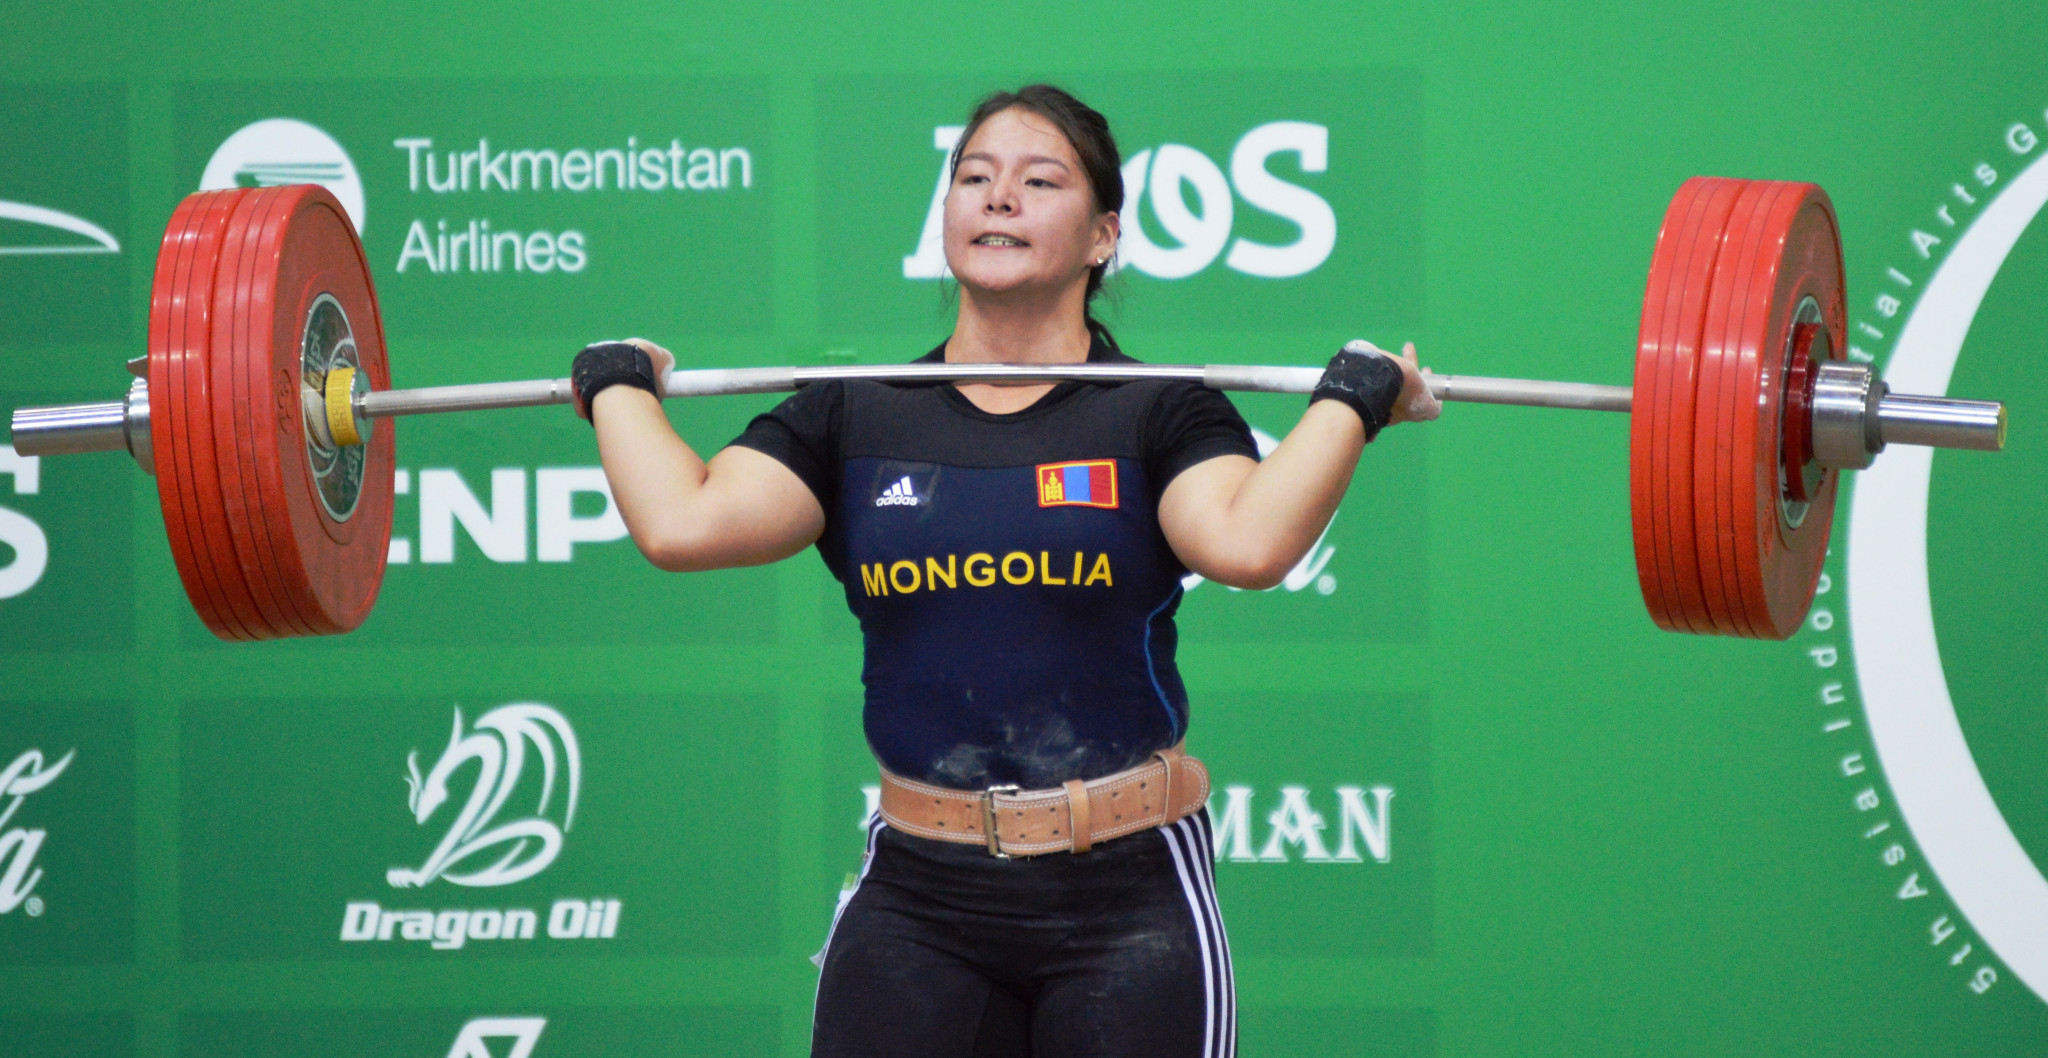 Mongolia's Ankhtsetseg Munkhjantsan triumphed in the women's 75kg category ©OCA